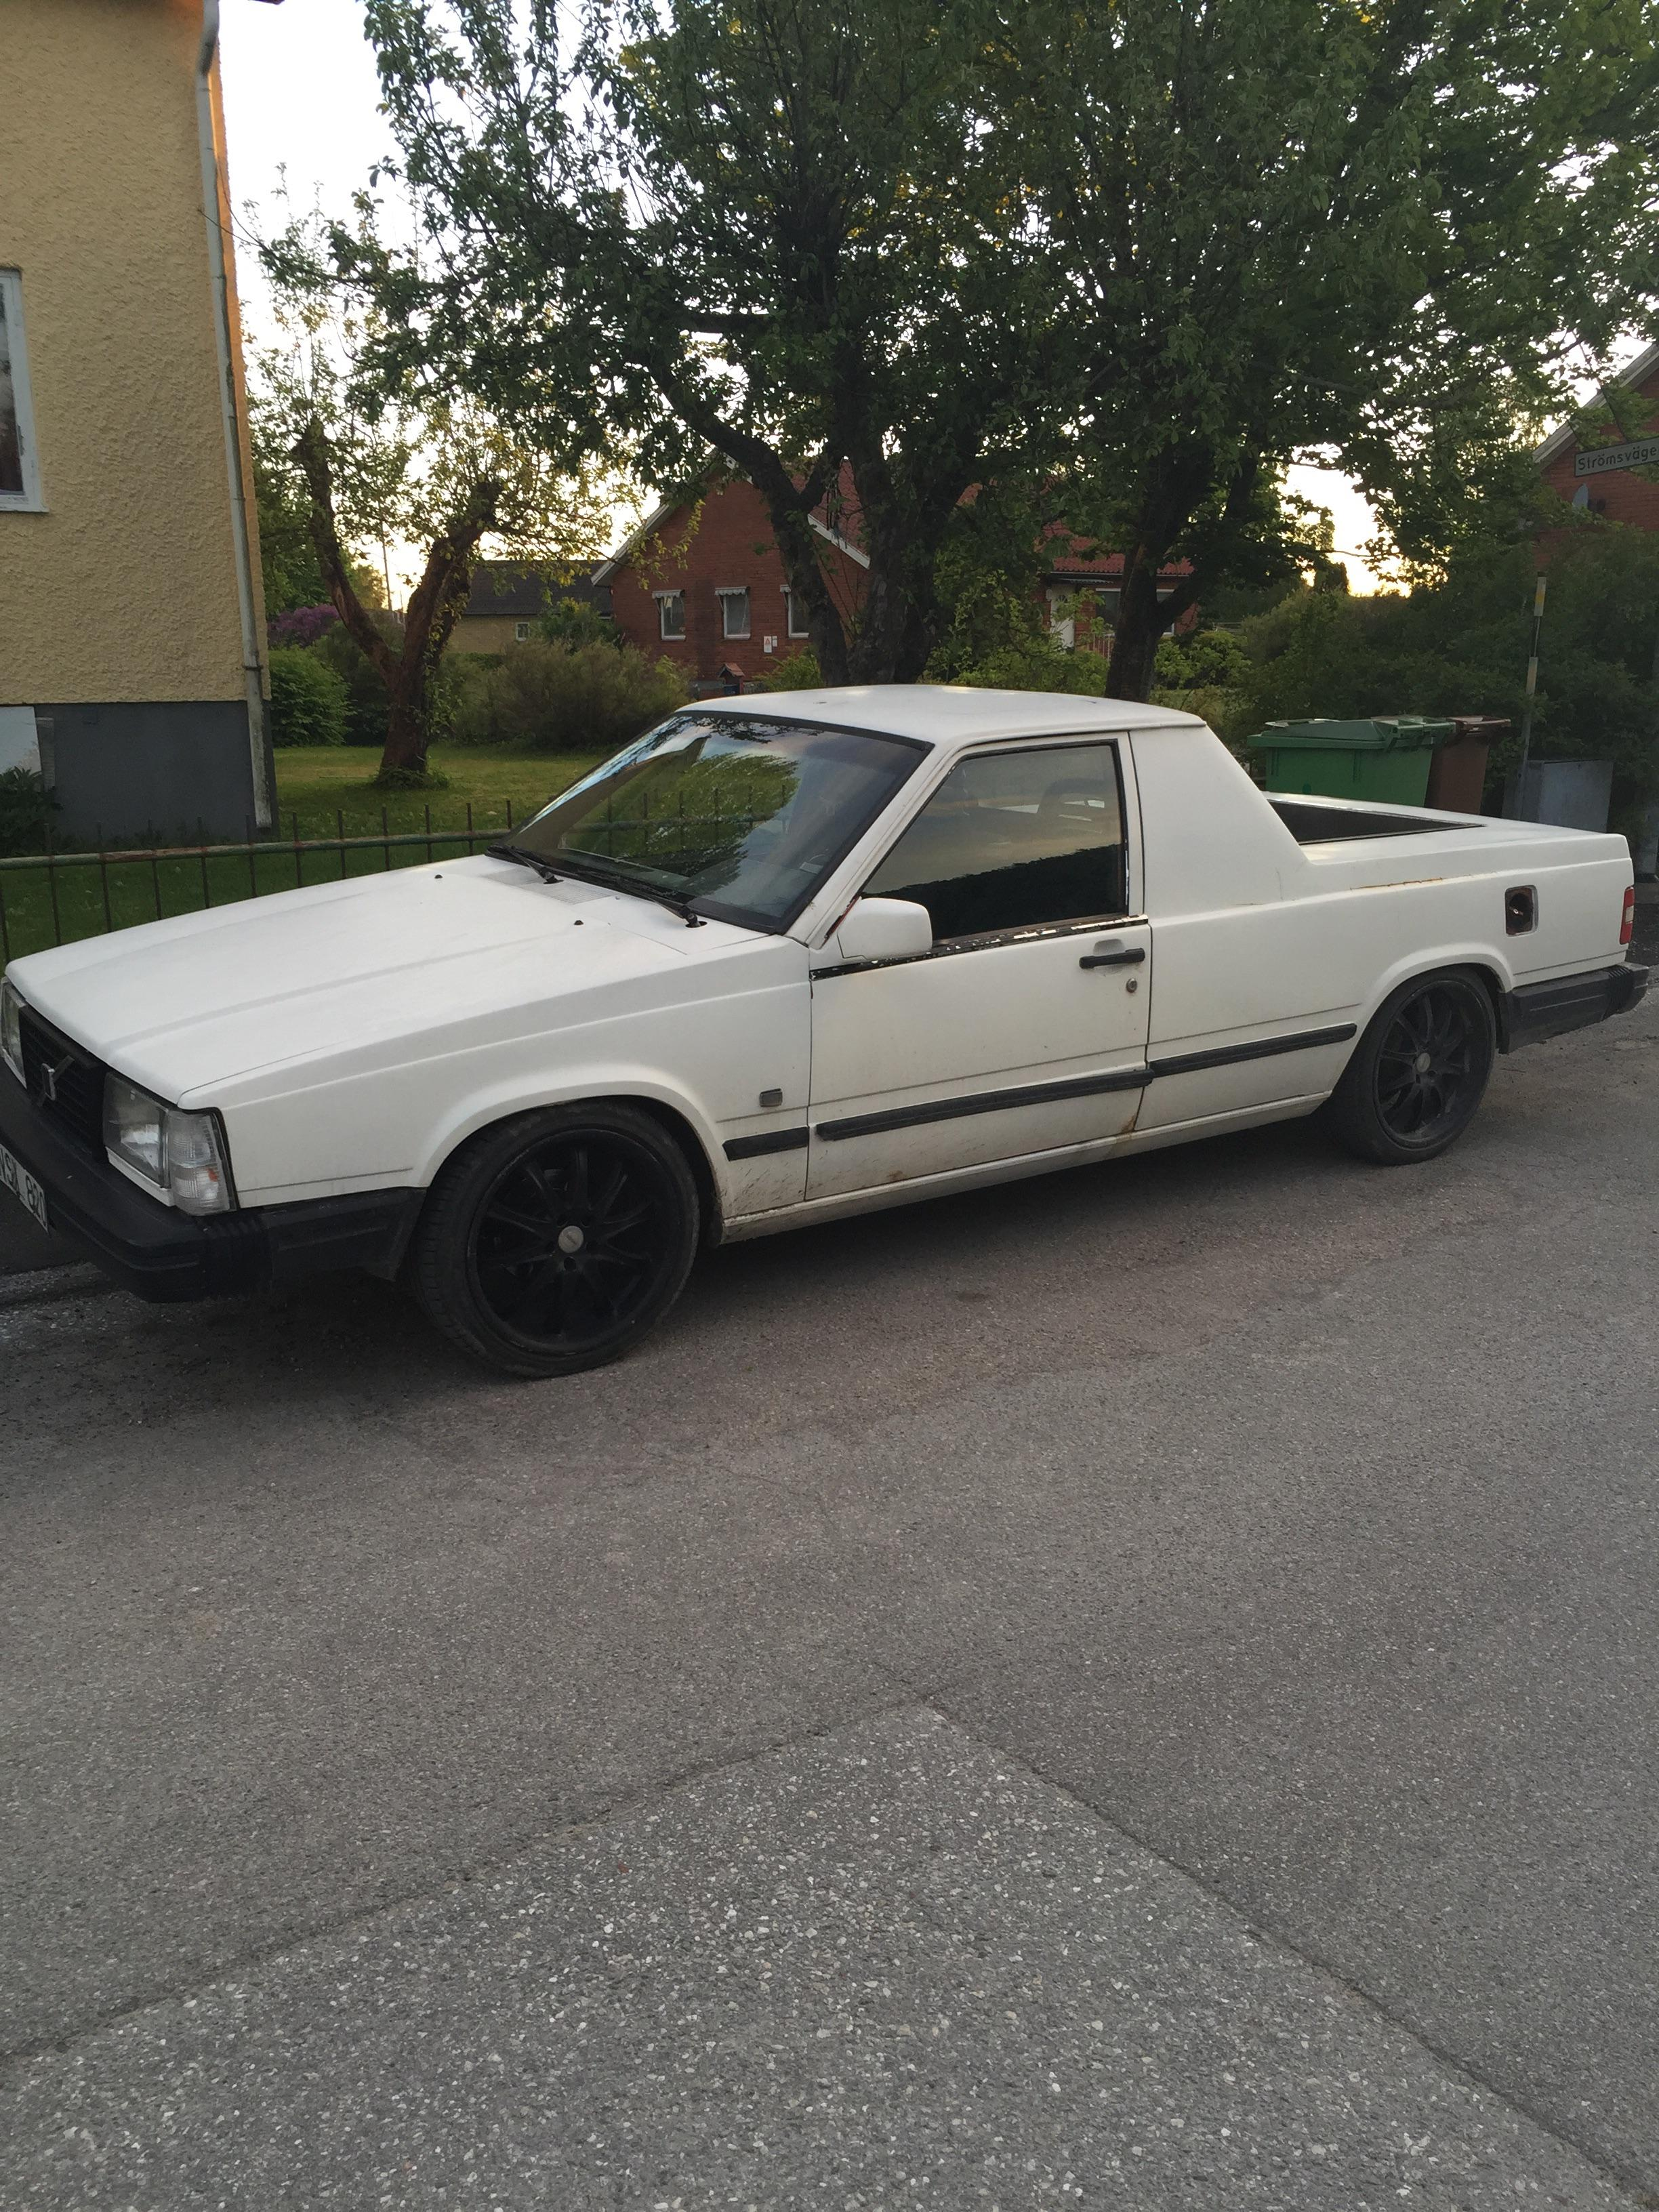 Hey I Bett You Non Swedish Guys Have Never Seen A 1988 Volvo 740 Gl